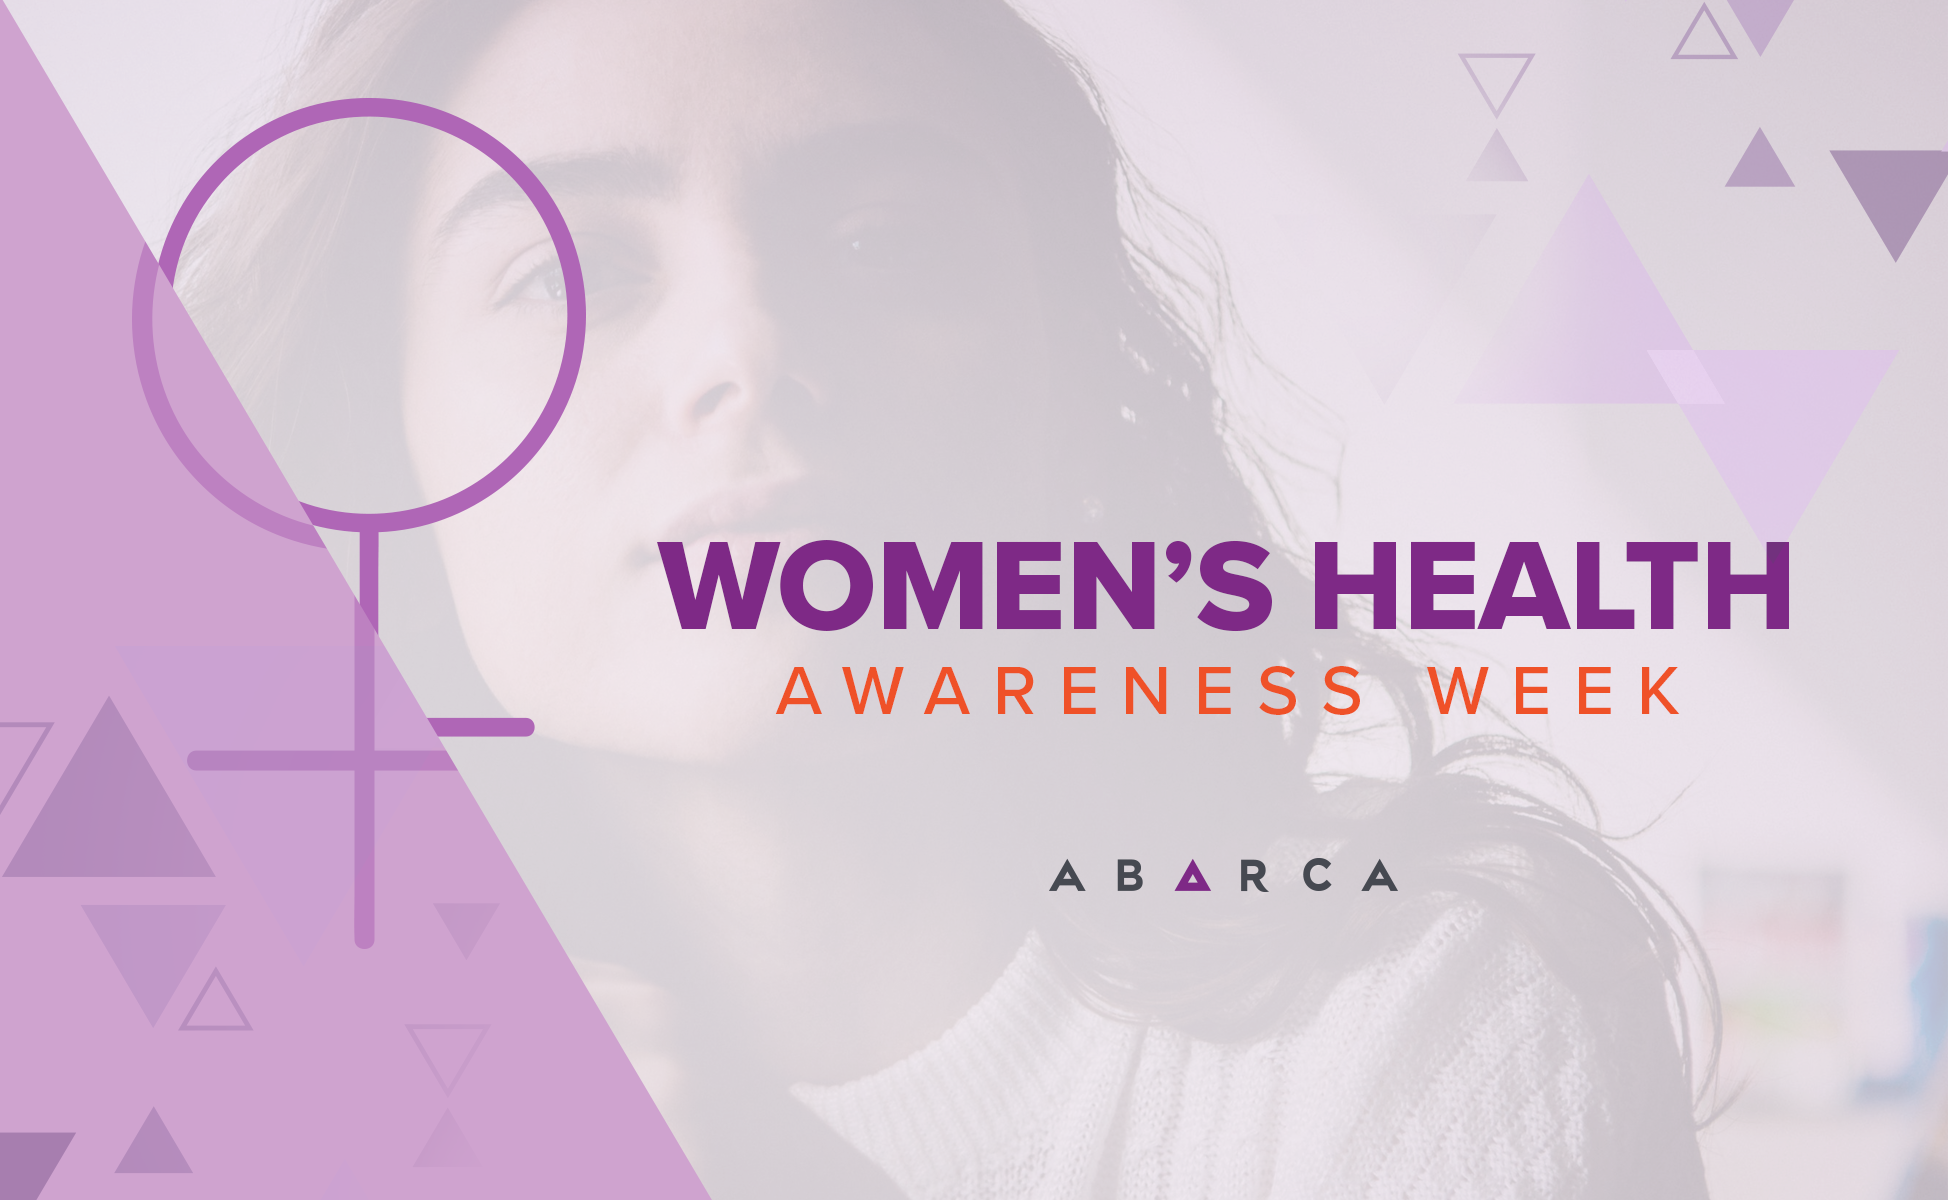 Abarca brings awareness to National Women's Health Week as part of Better Care